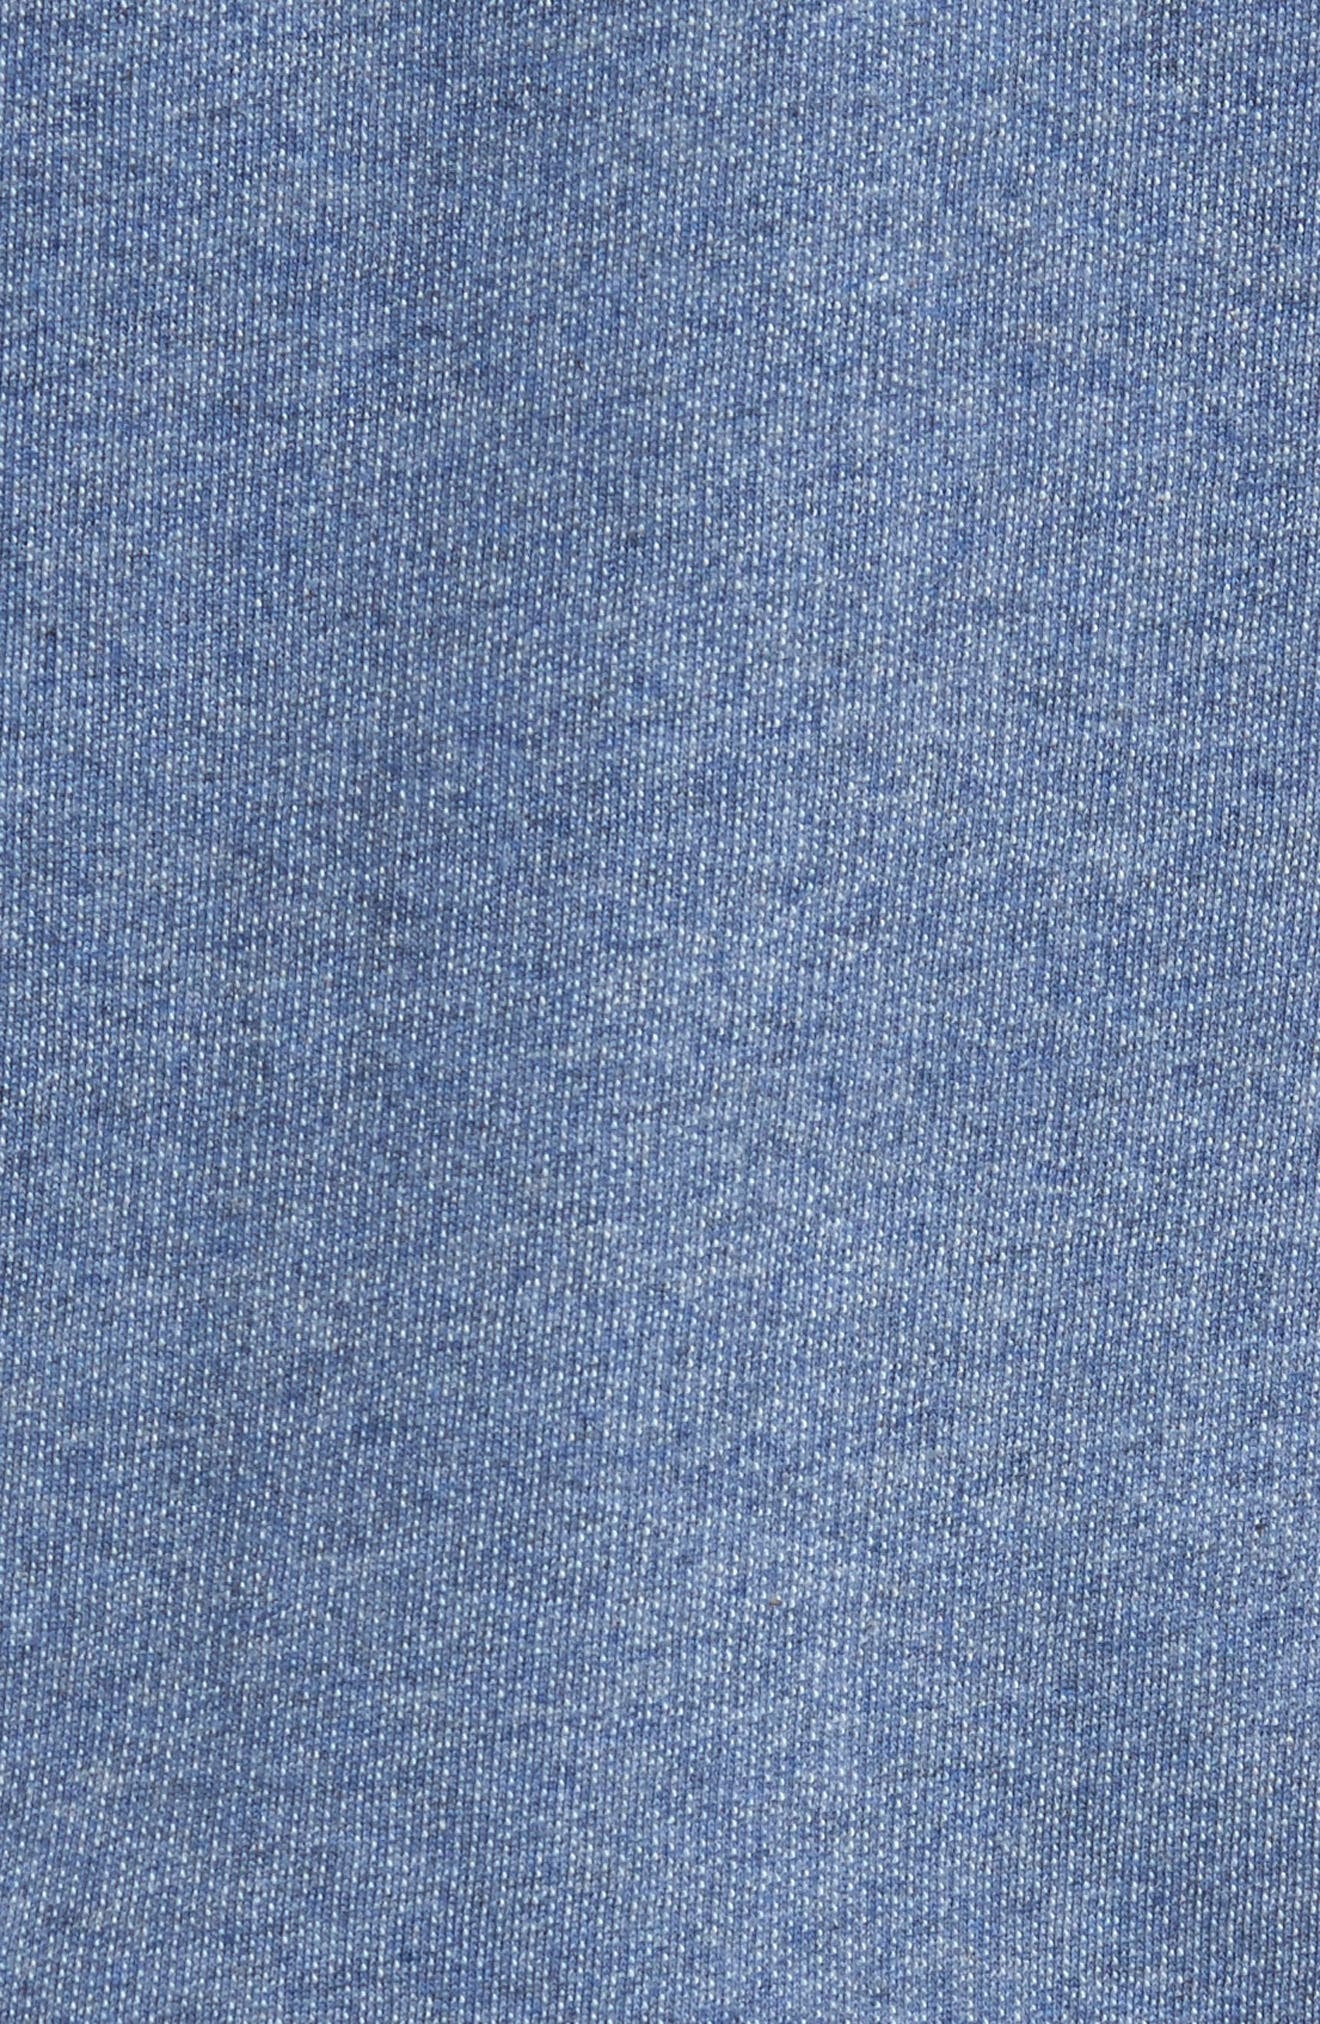 Fitz Roy Frostbite PolyCycle<sup>®</sup> Full Zip Hoodie,                             Alternate thumbnail 5, color,                             Dolomite Blue